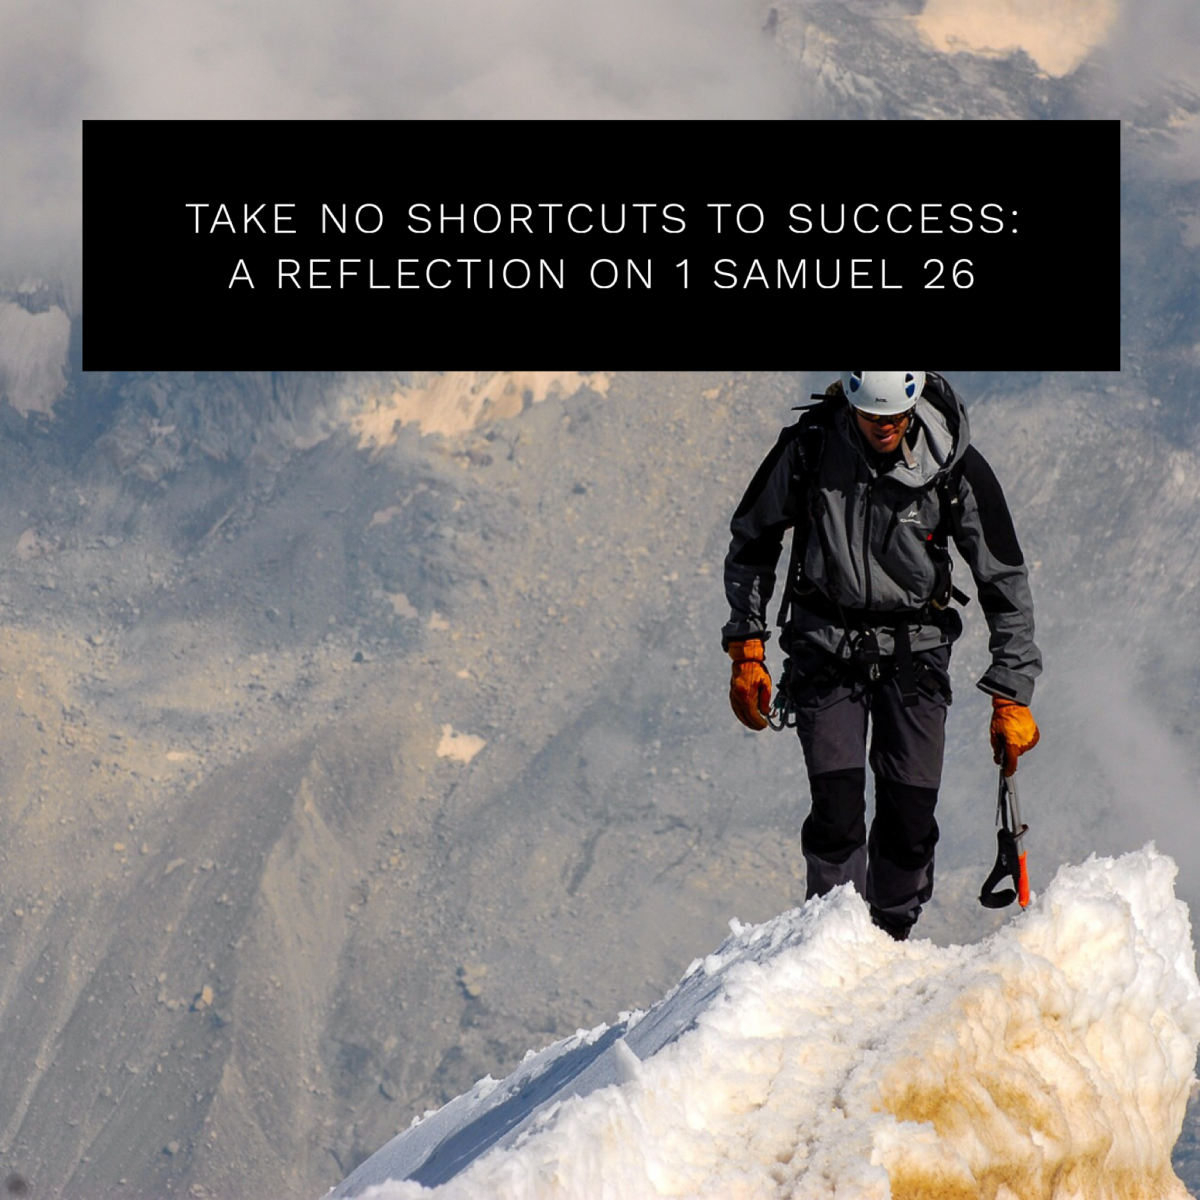 Take No Shortcuts to Success: A Reflection on 1 Samuel 26